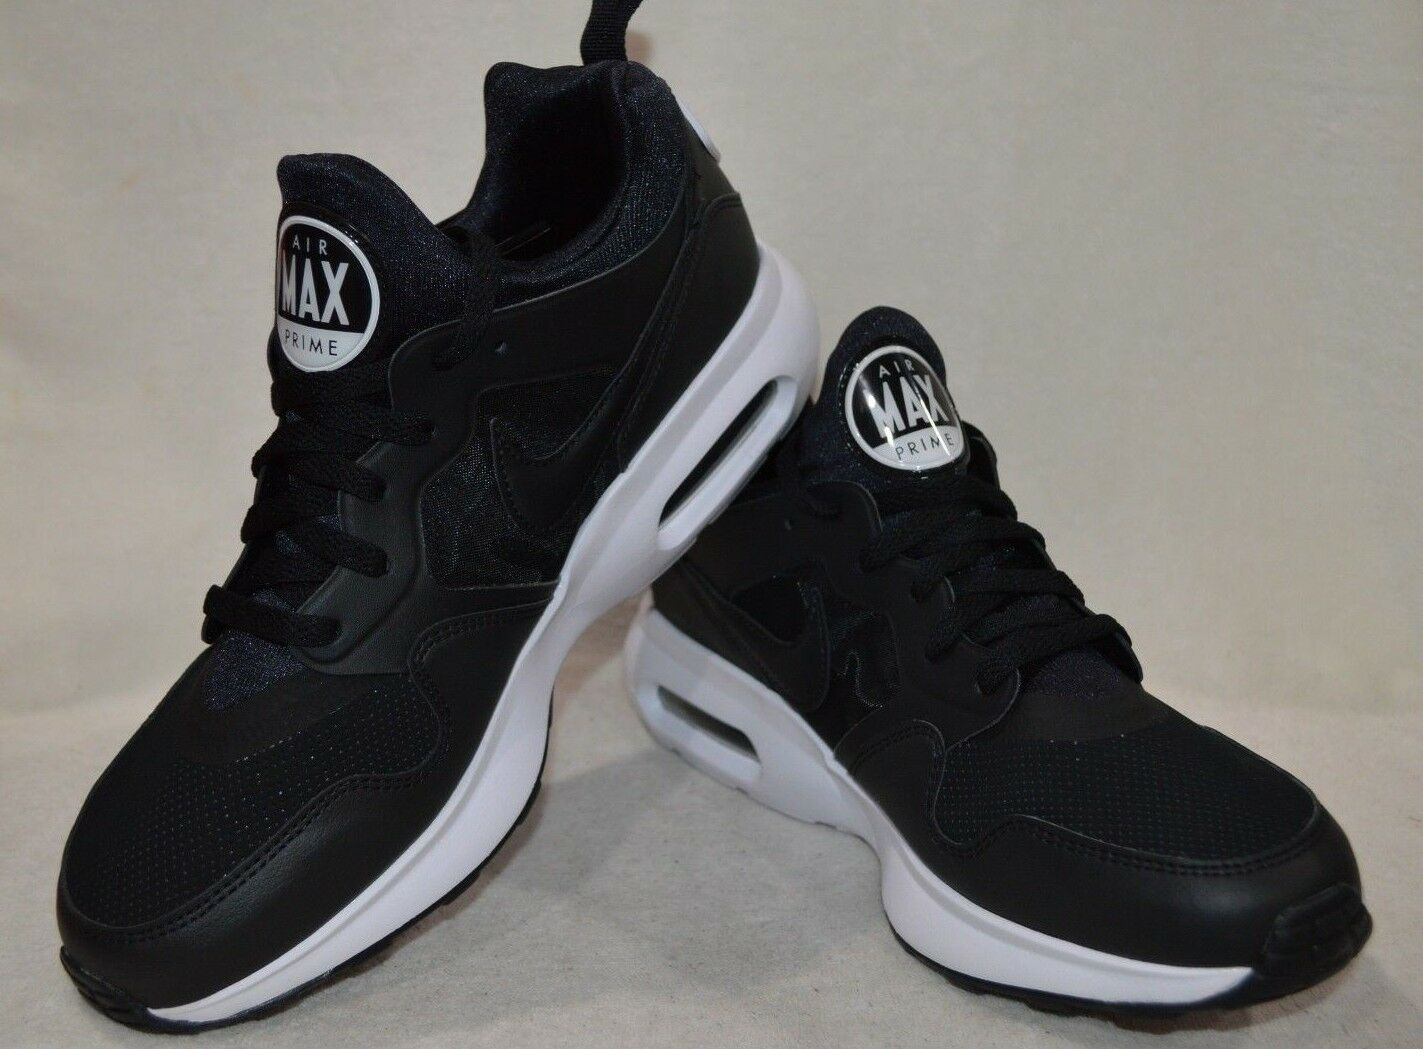 7b4ba8f62f Nike Air Max Prime SL Black White Men Running shoes-Assorted Size NWB  876069-